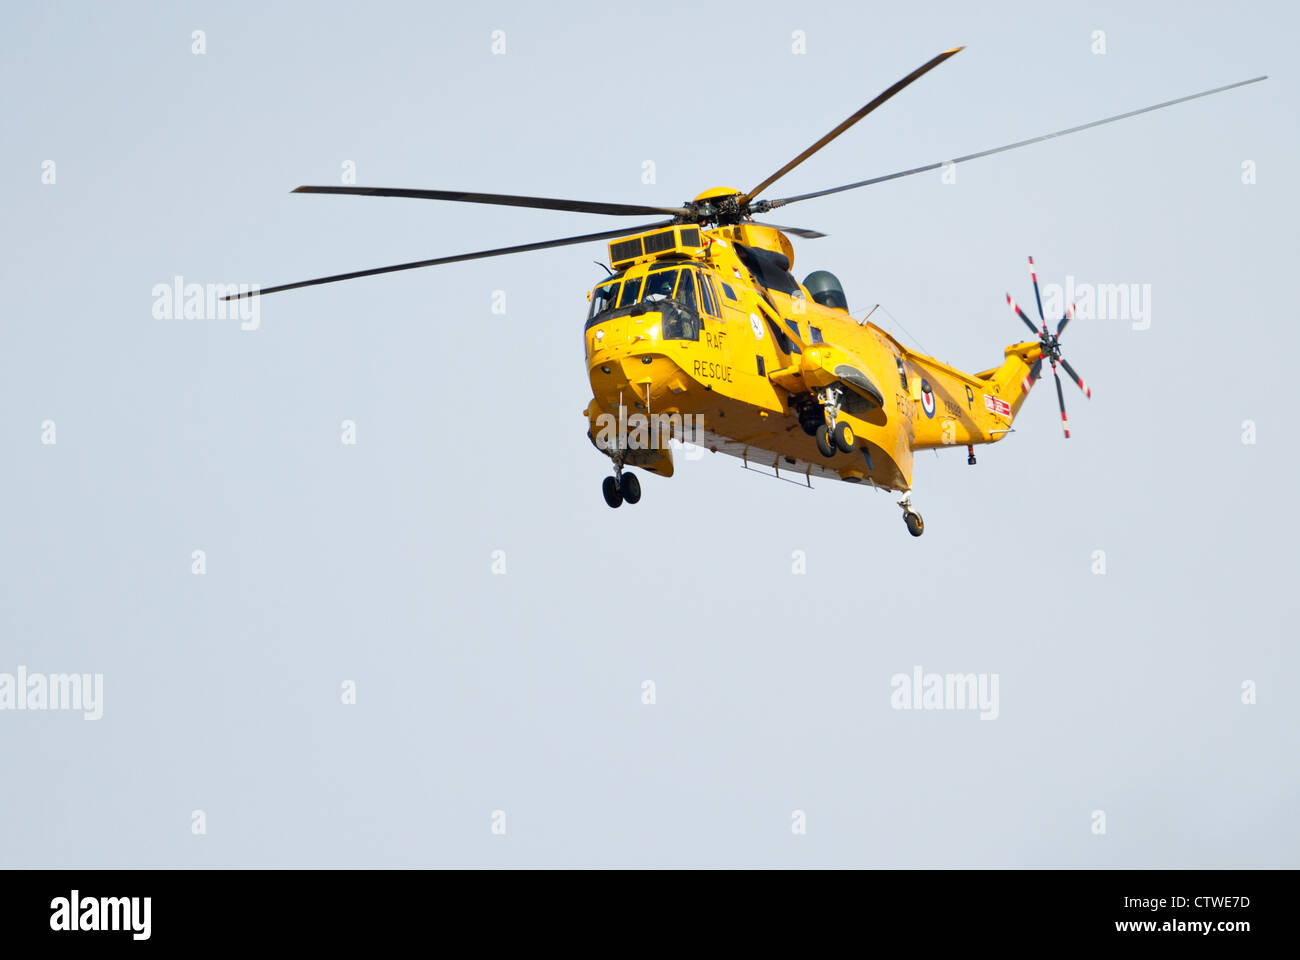 Yellow Air sea rescue helicopter in the air. - Stock Image